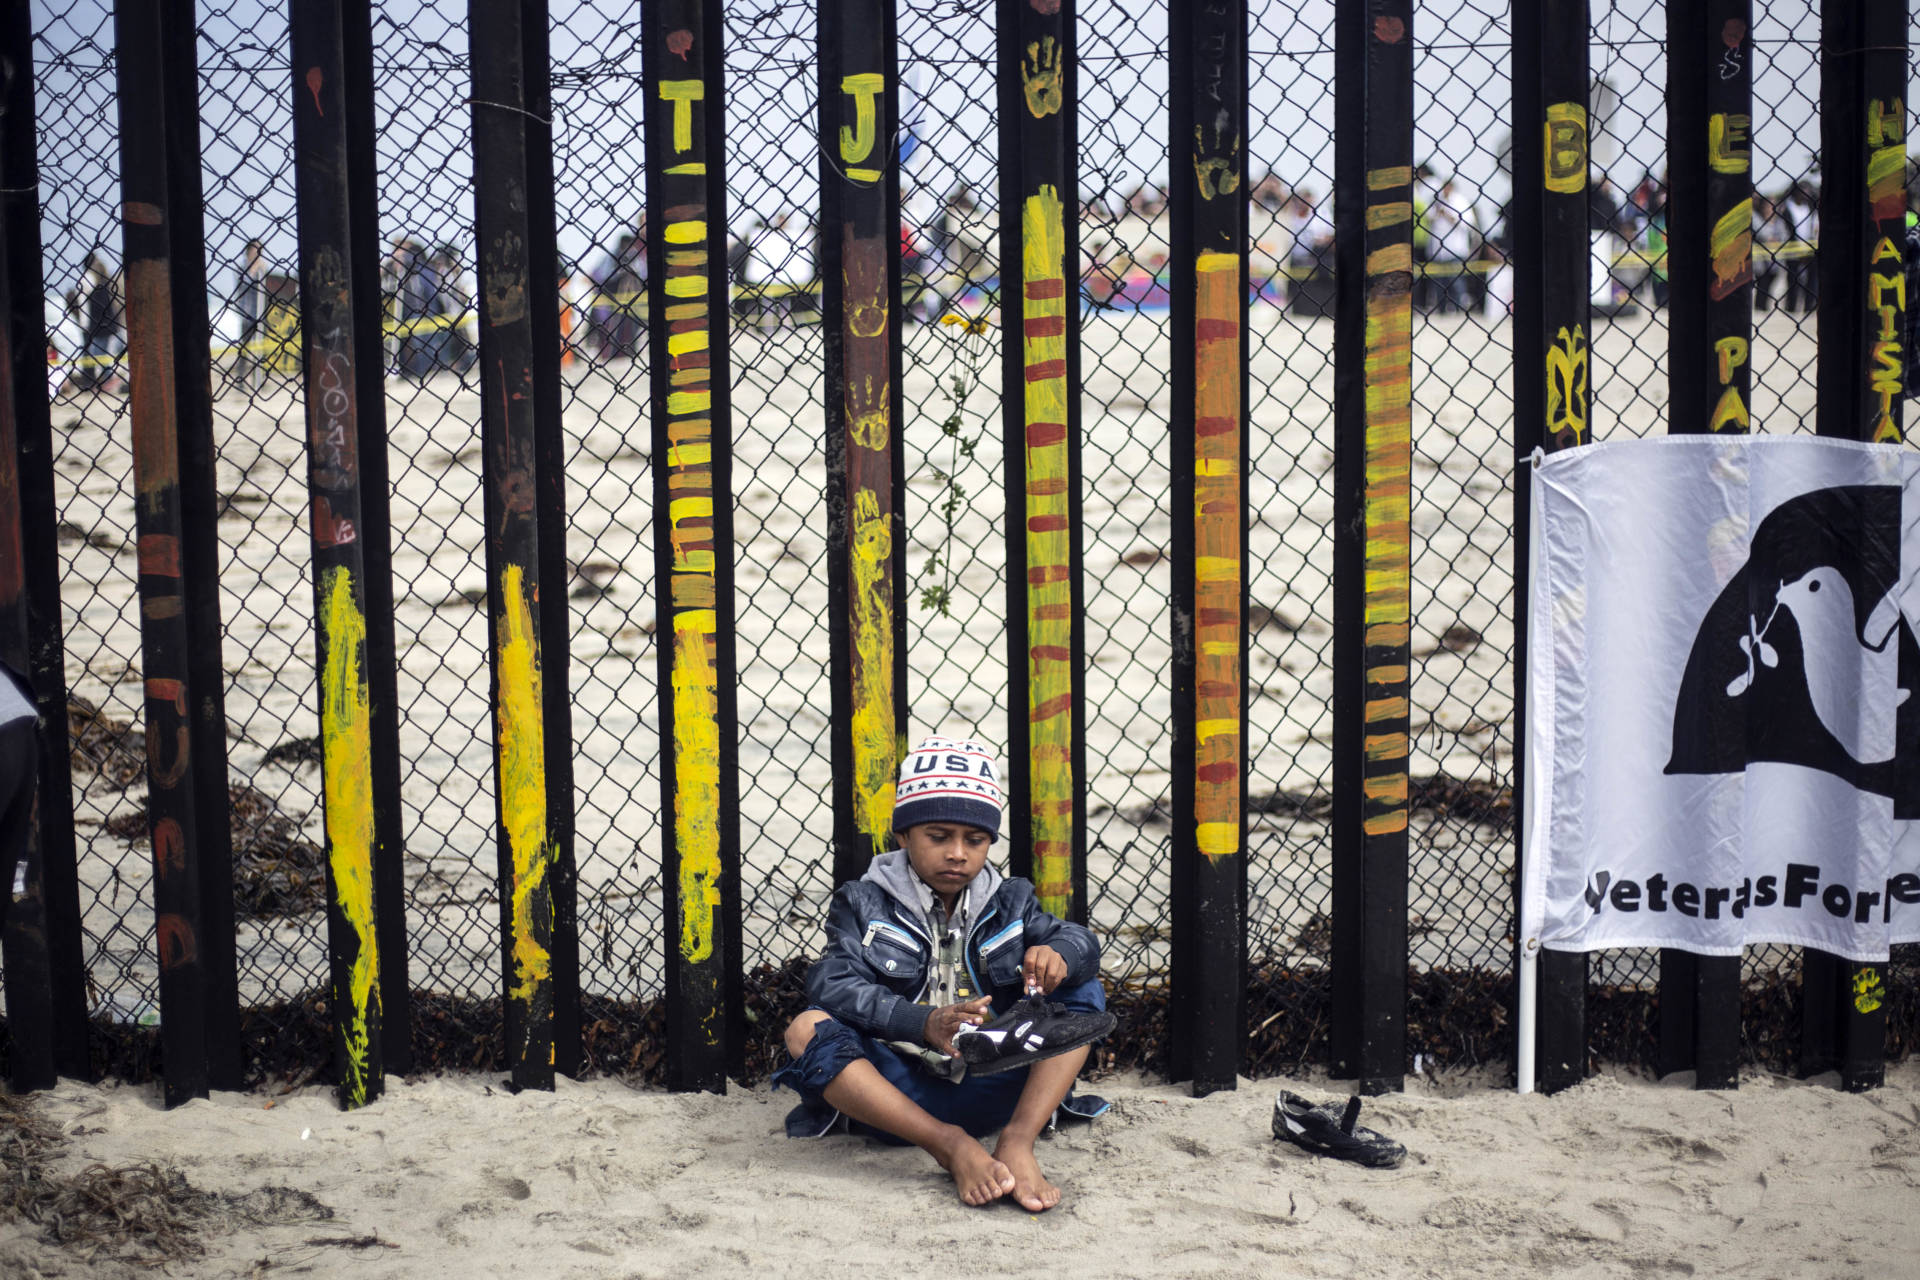 """A Central American migrant boy travelling in the """"Migrant Via Crucis"""" caravan removes sand of his shoes during a demonstration at the US/Mexico Border at Tijuana's beaches, Baja California state, Mexico, on April 29, 2018."""